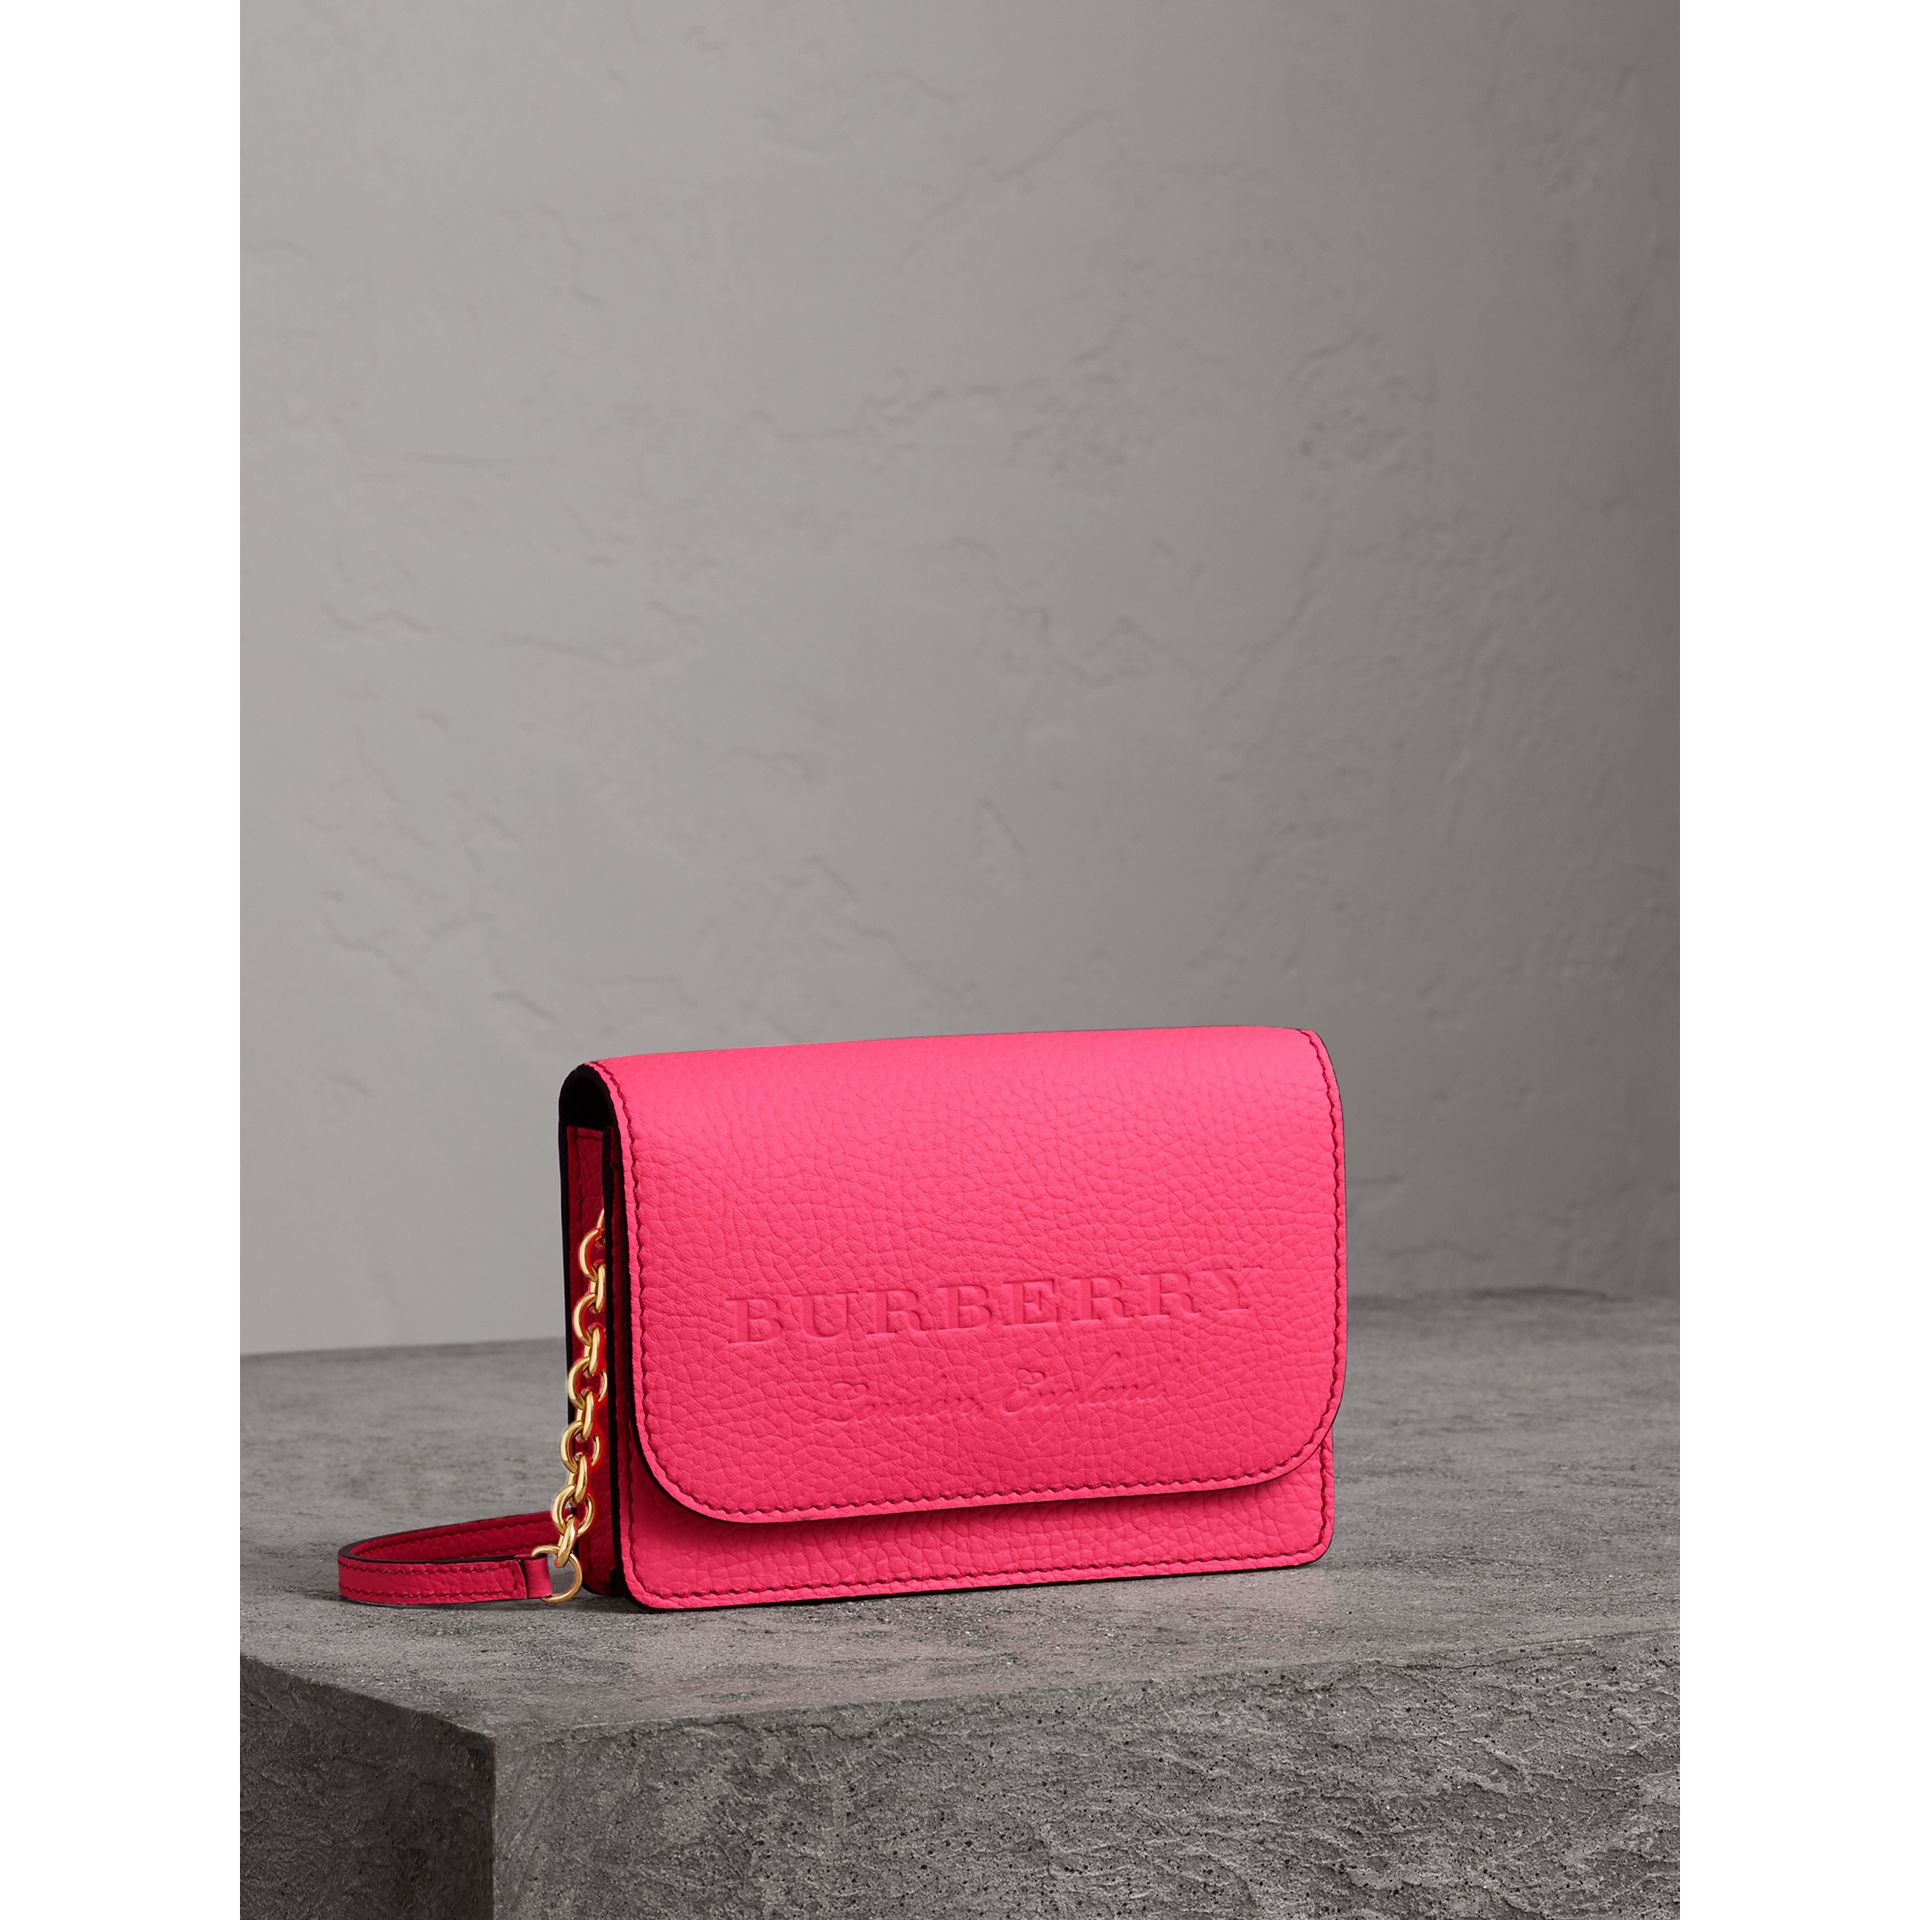 Embossed Leather Wallet with Detachable Strap in Bright Pink - Women | Burberry - gallery image 6